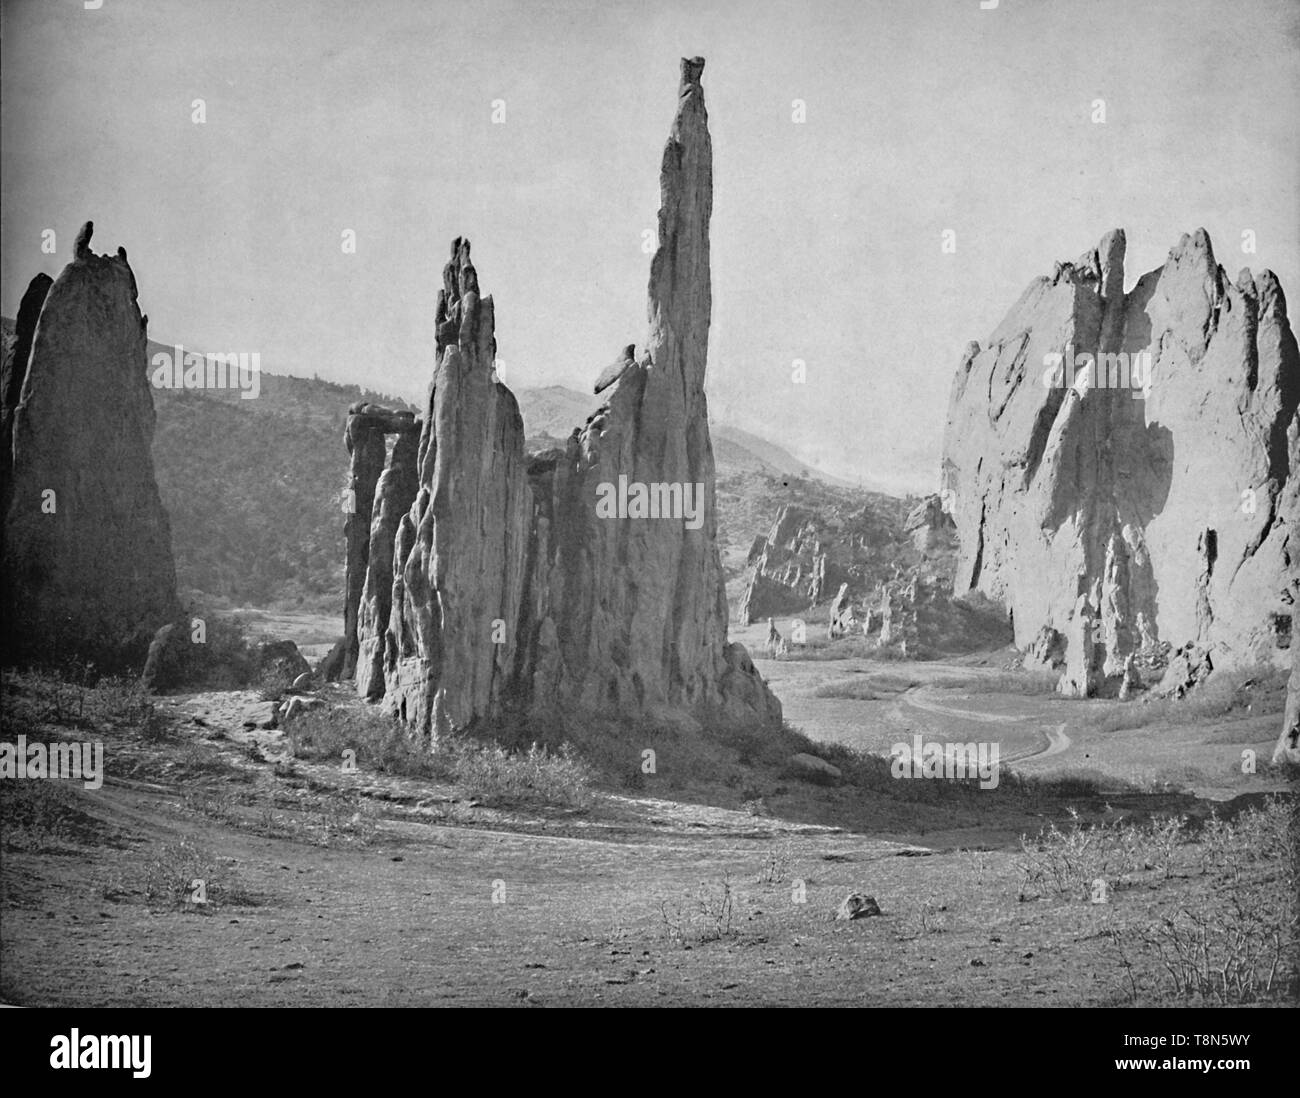 "'Cathedral Spires, Garden of the Gods, Colorado', c1897. Red rock formations  in Colorado Springs purchased in 1879 by Charles Elliott Perkins and on his death, given to the City of Colorado Springs. From ""A Tour Through the New World America"", by Prof. Geo. R. Cromwell. [C. N. Greig & Co., London, c1897] - Stock Image"